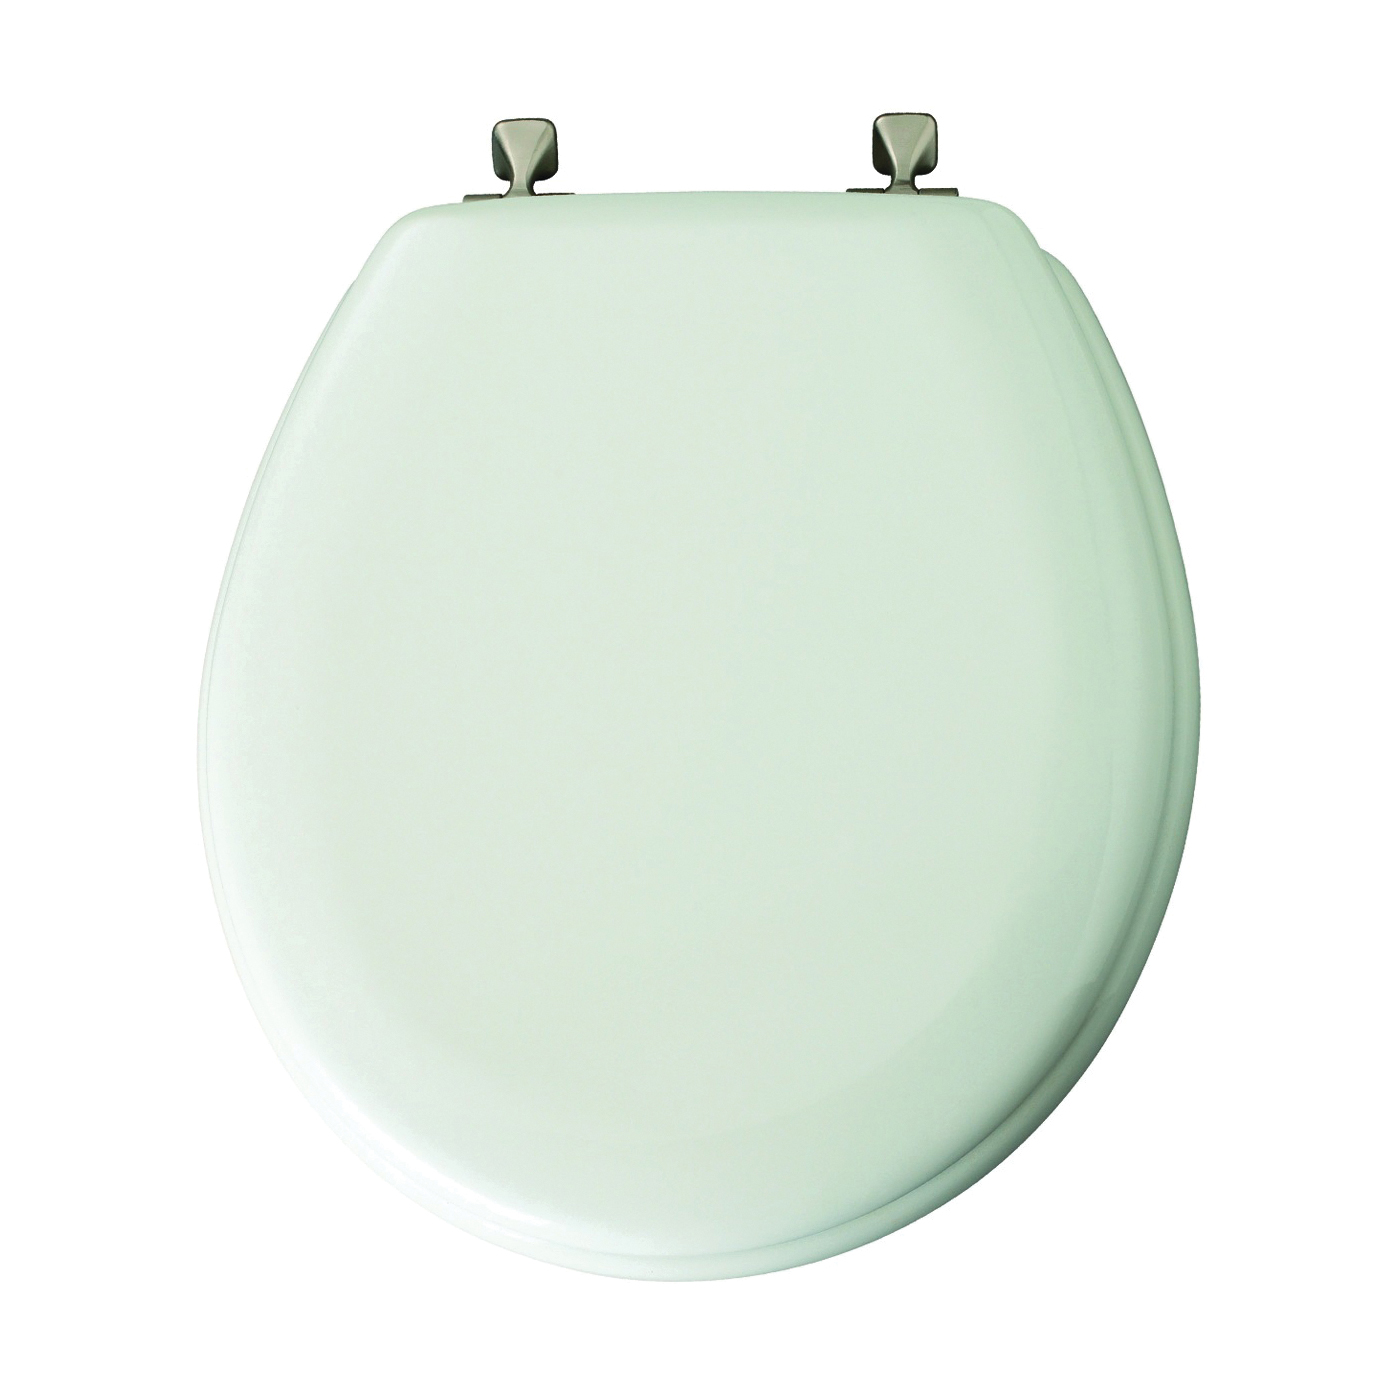 Picture of Mayfair 44BN000 Toilet Seat, Round, Wood, White, Non-Tarnish, Classic Hinge